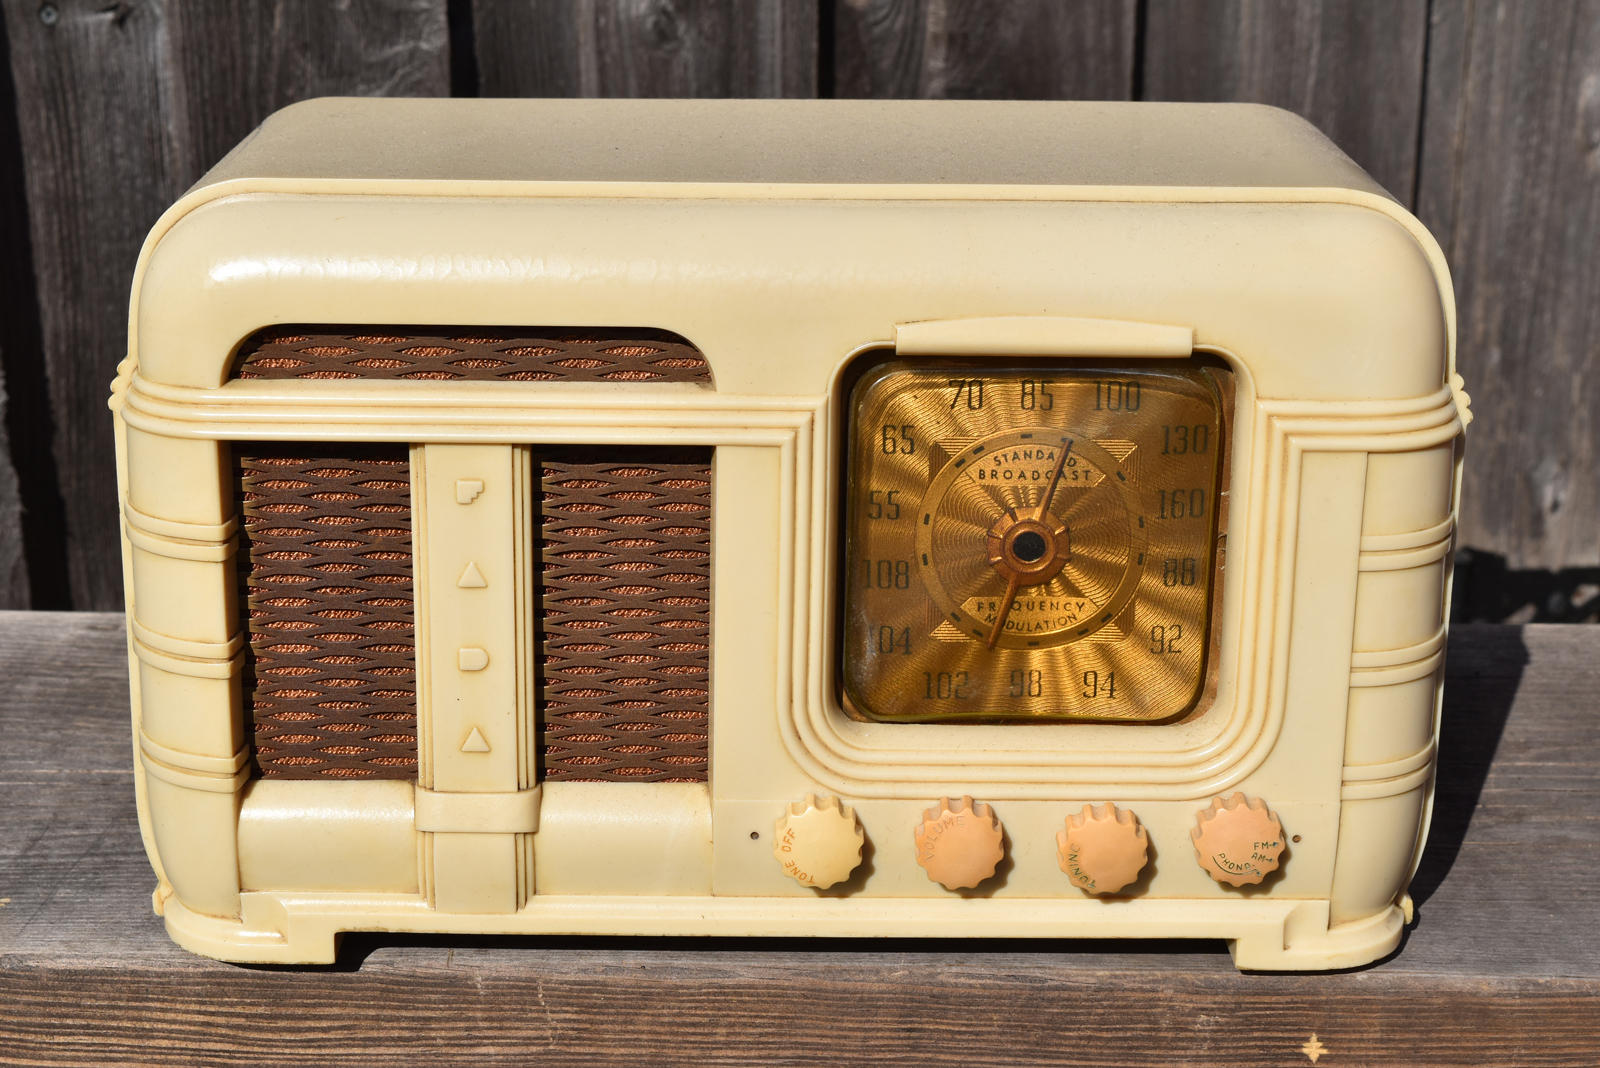 FADA Radio Model 790 Antique Tube Type Fully Restored To Original Operating Condition Both The Chassis And Cabinet Have Been